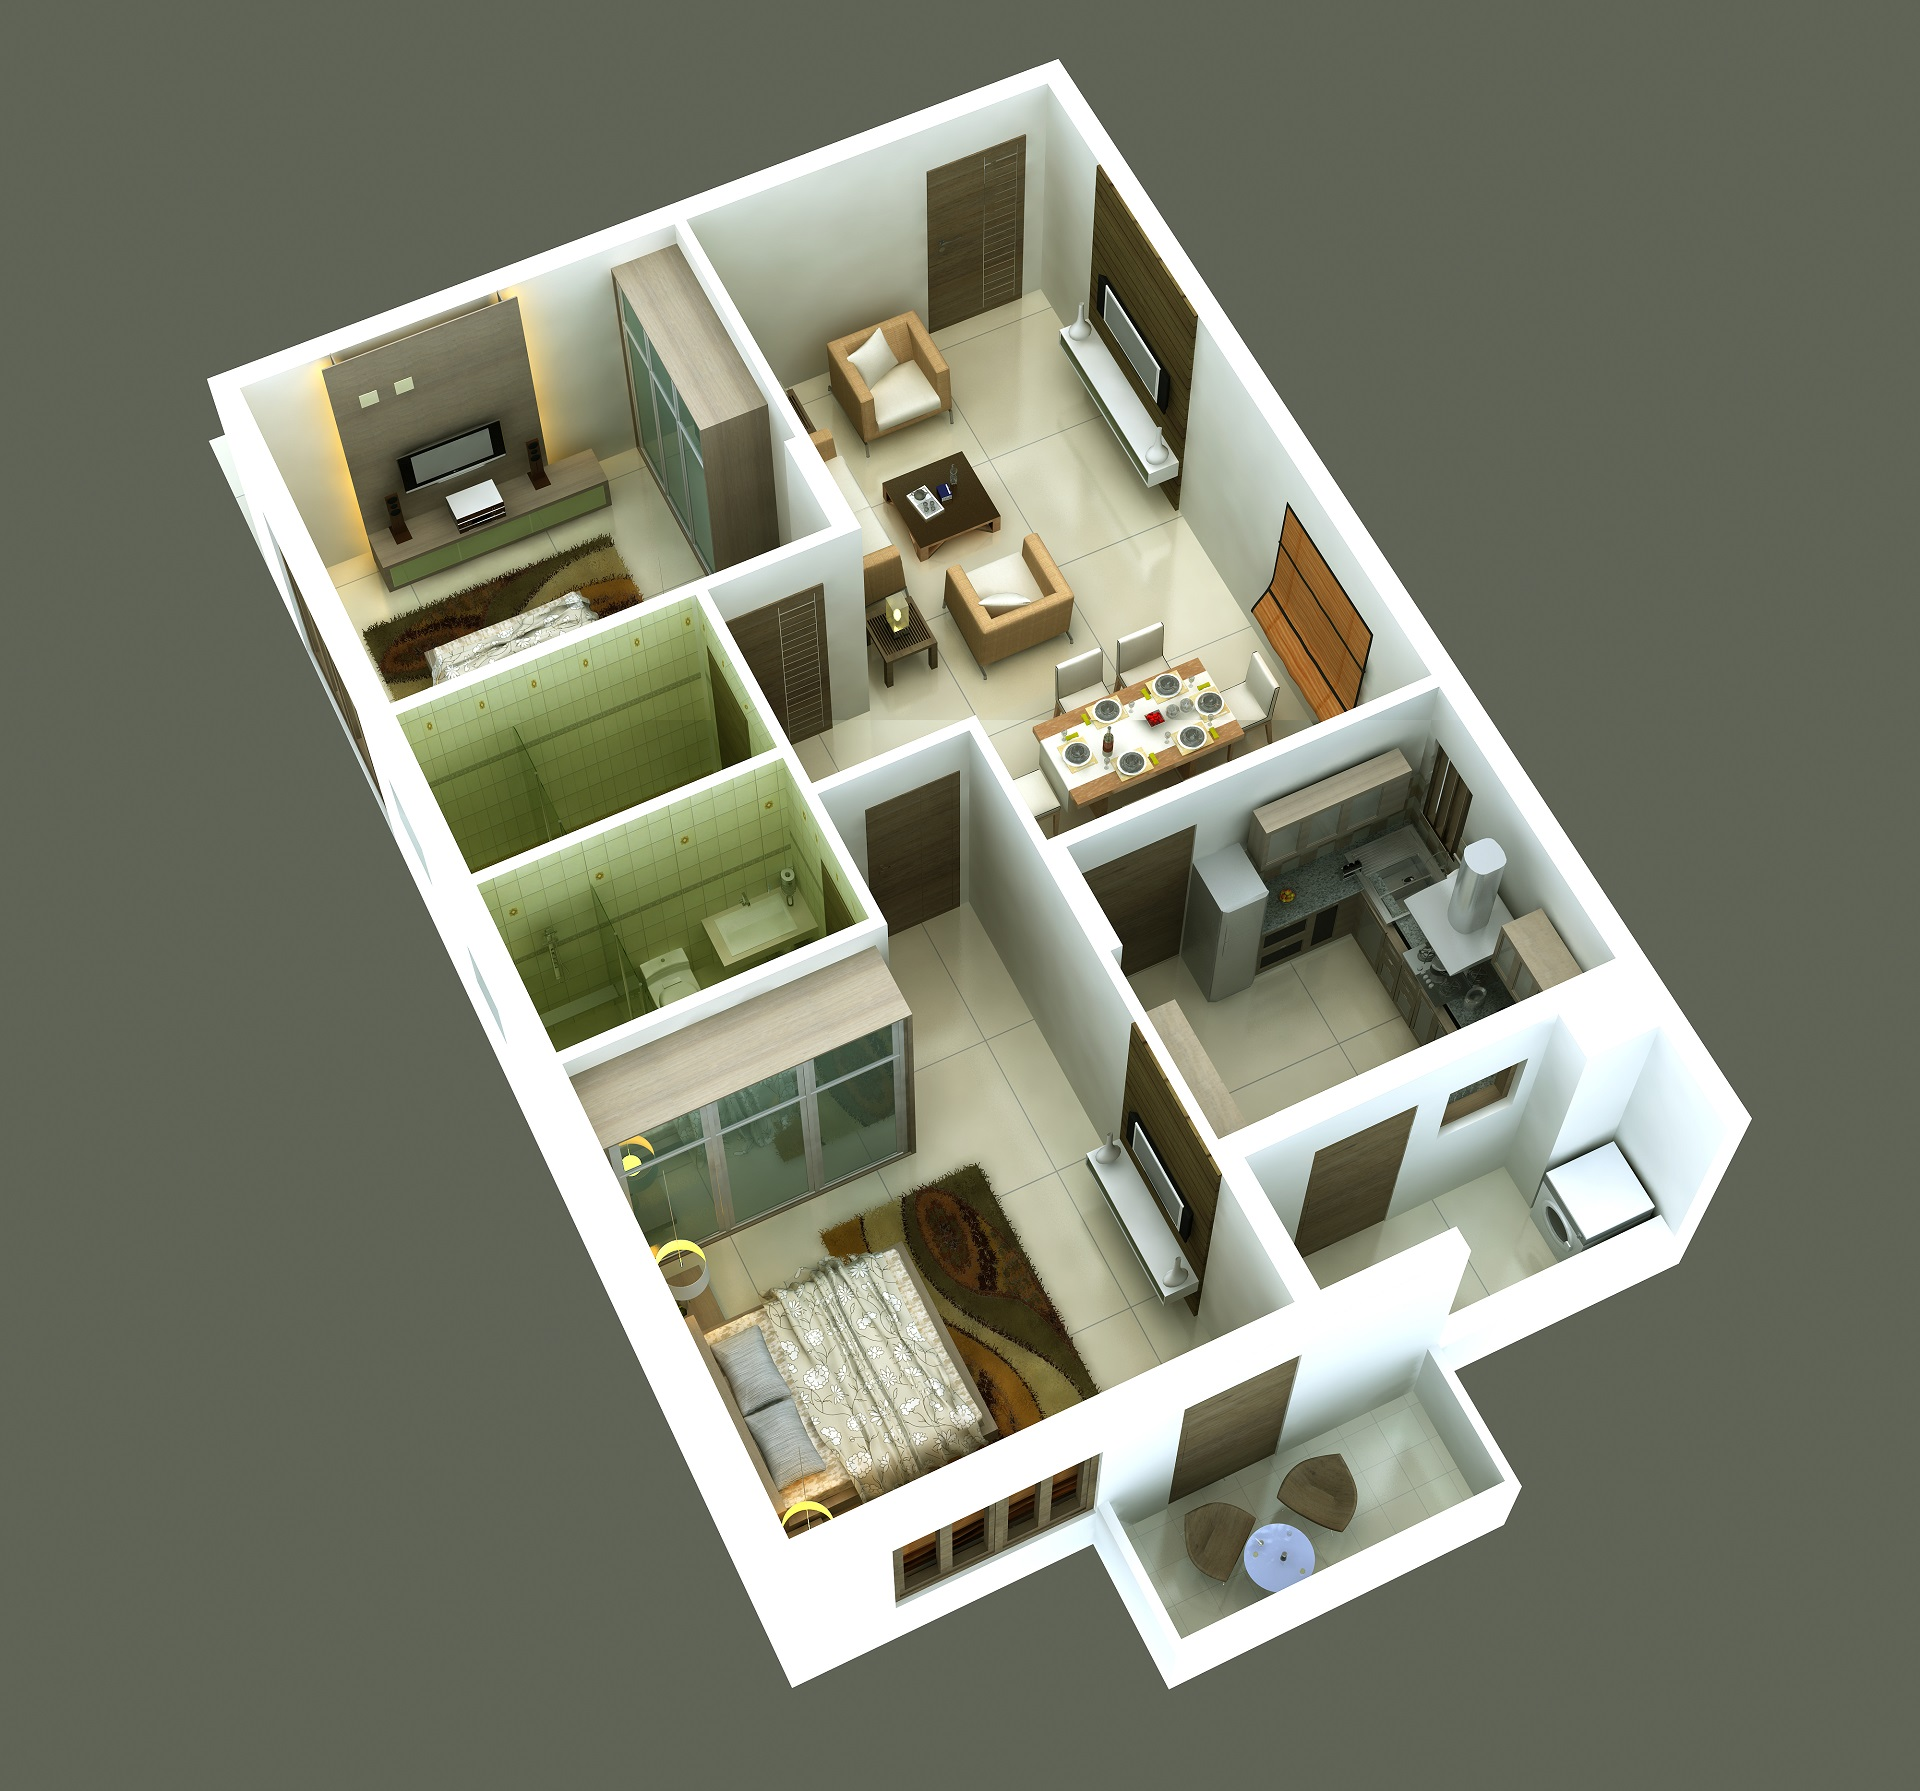 ar-concepts-emami-apartment-residential-north-double-bedroom-image-a